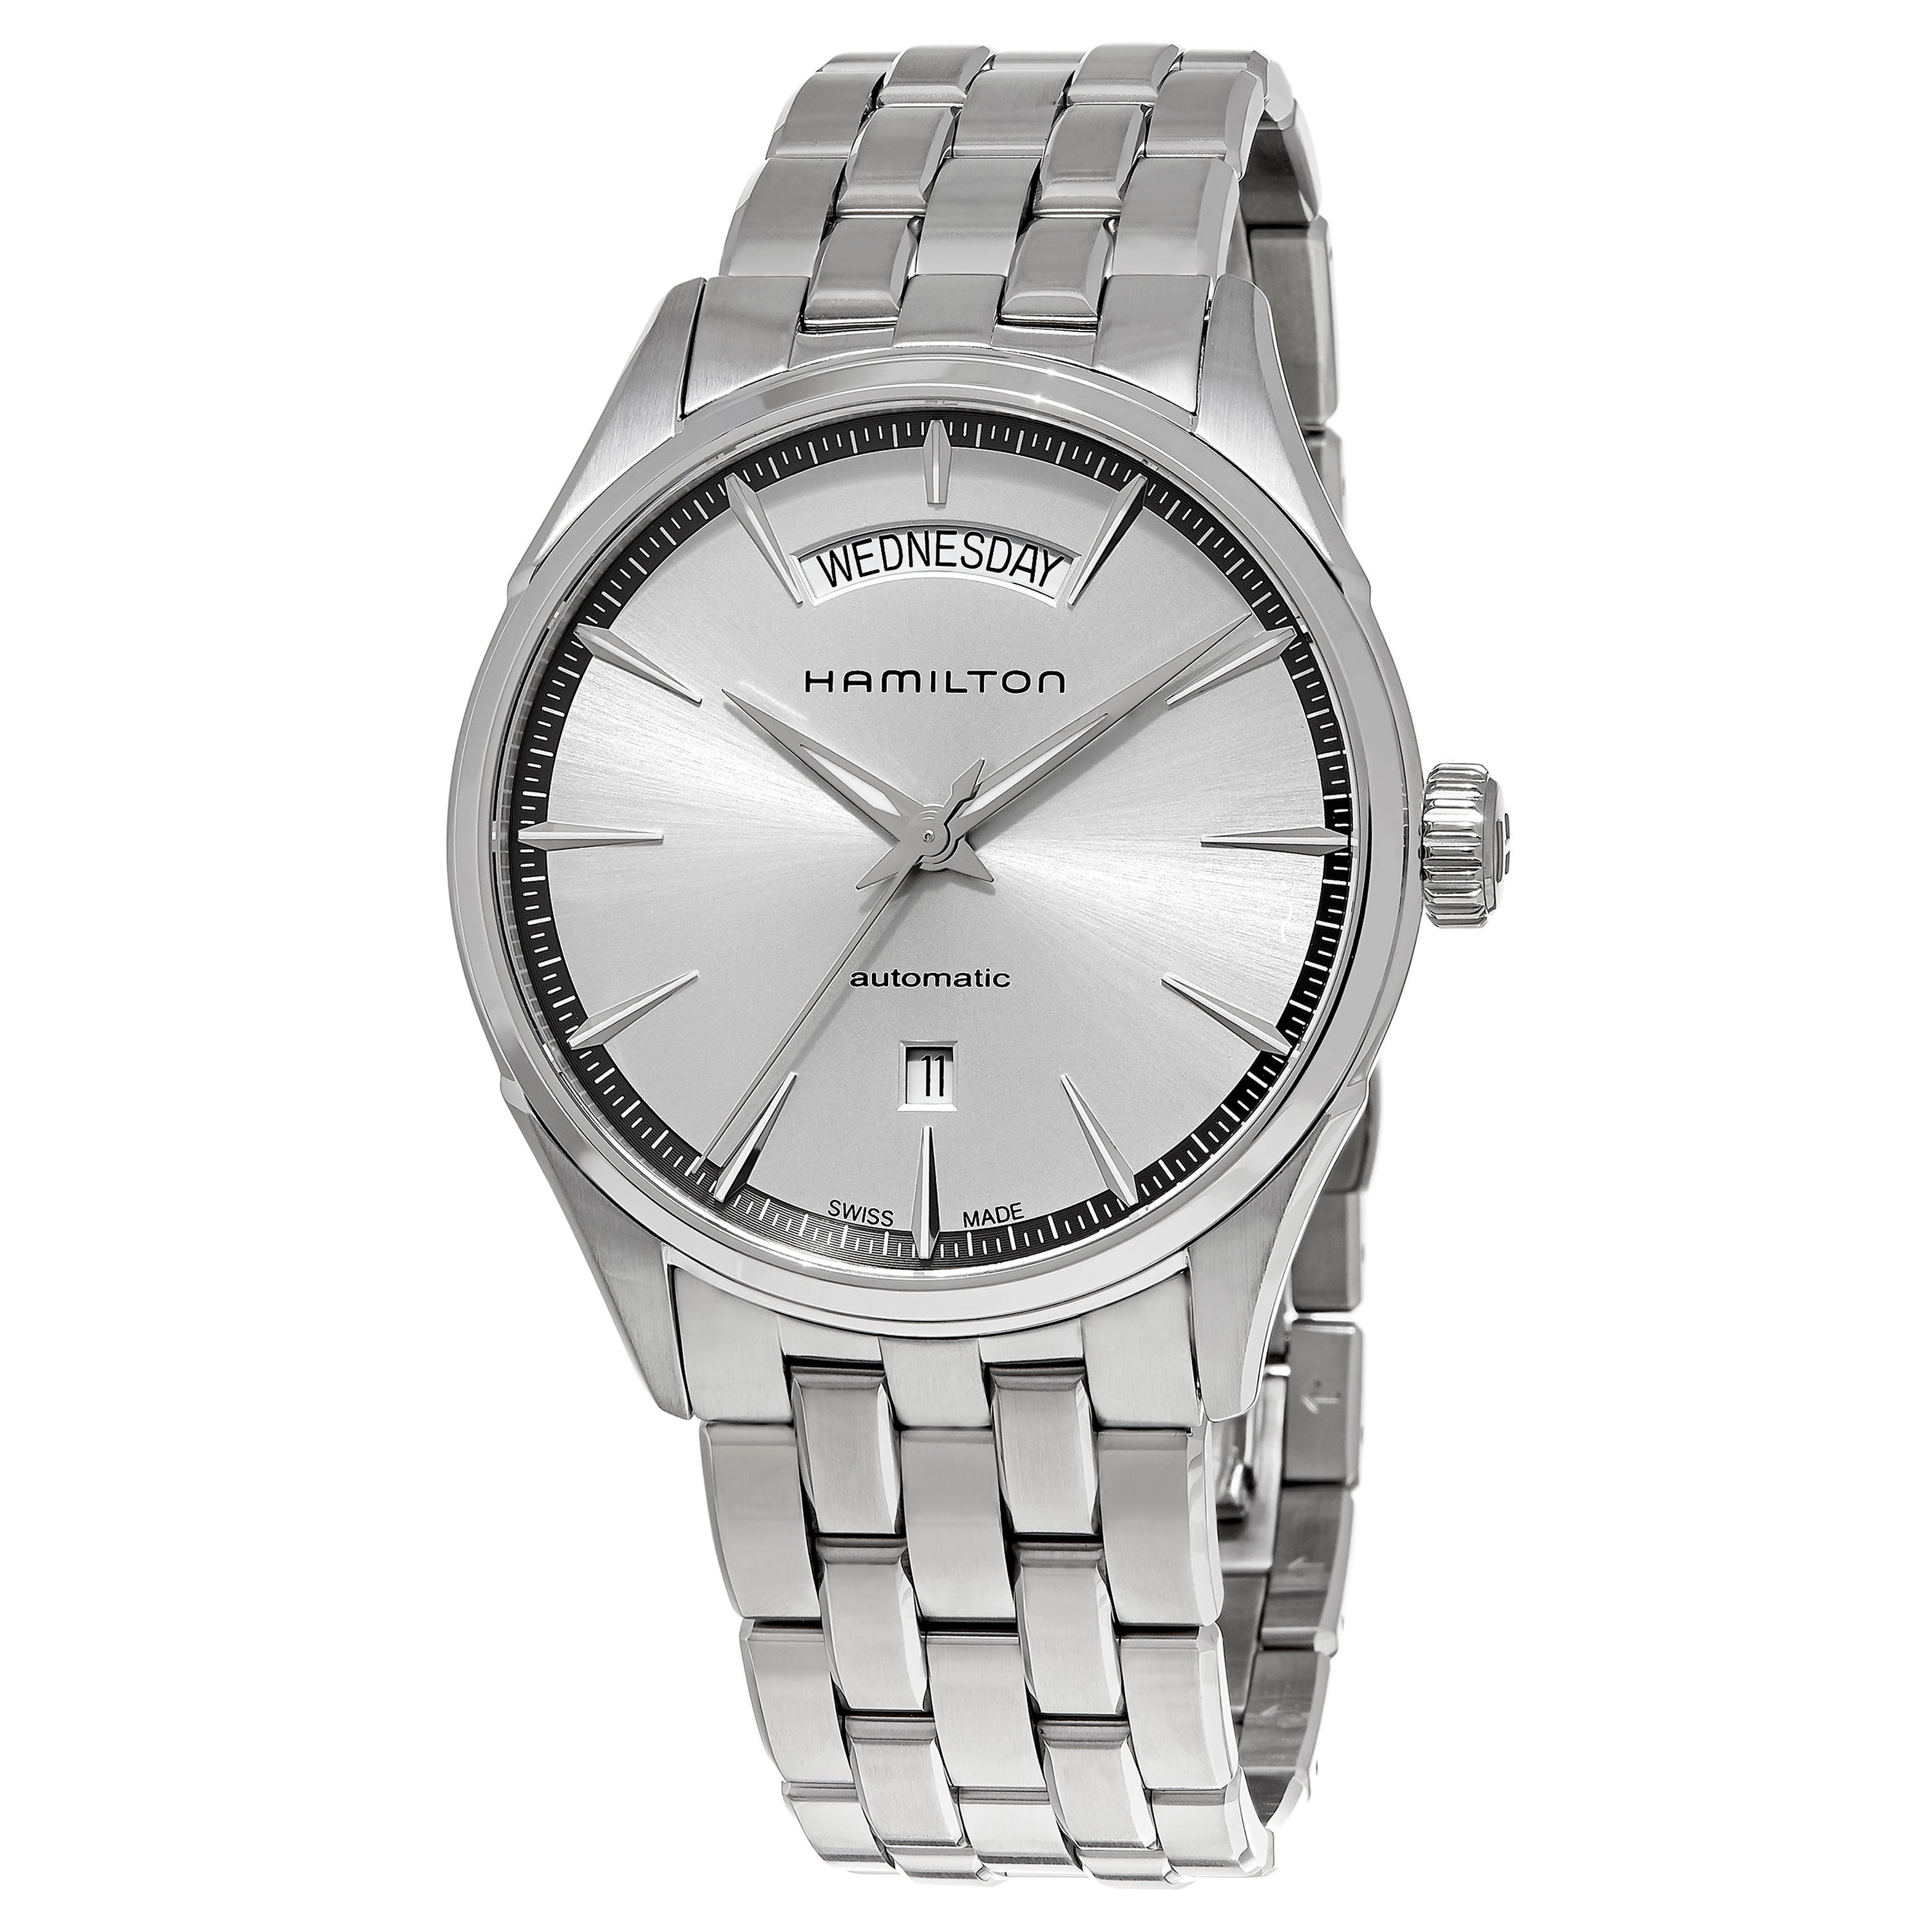 4bdab498738 Shop Hamilton Men s H42565151  Jazzmaster  Silver Dial Stainless Steel Day  Date Swiss Automatic Watch - Free Shipping Today - Overstock - 11586458